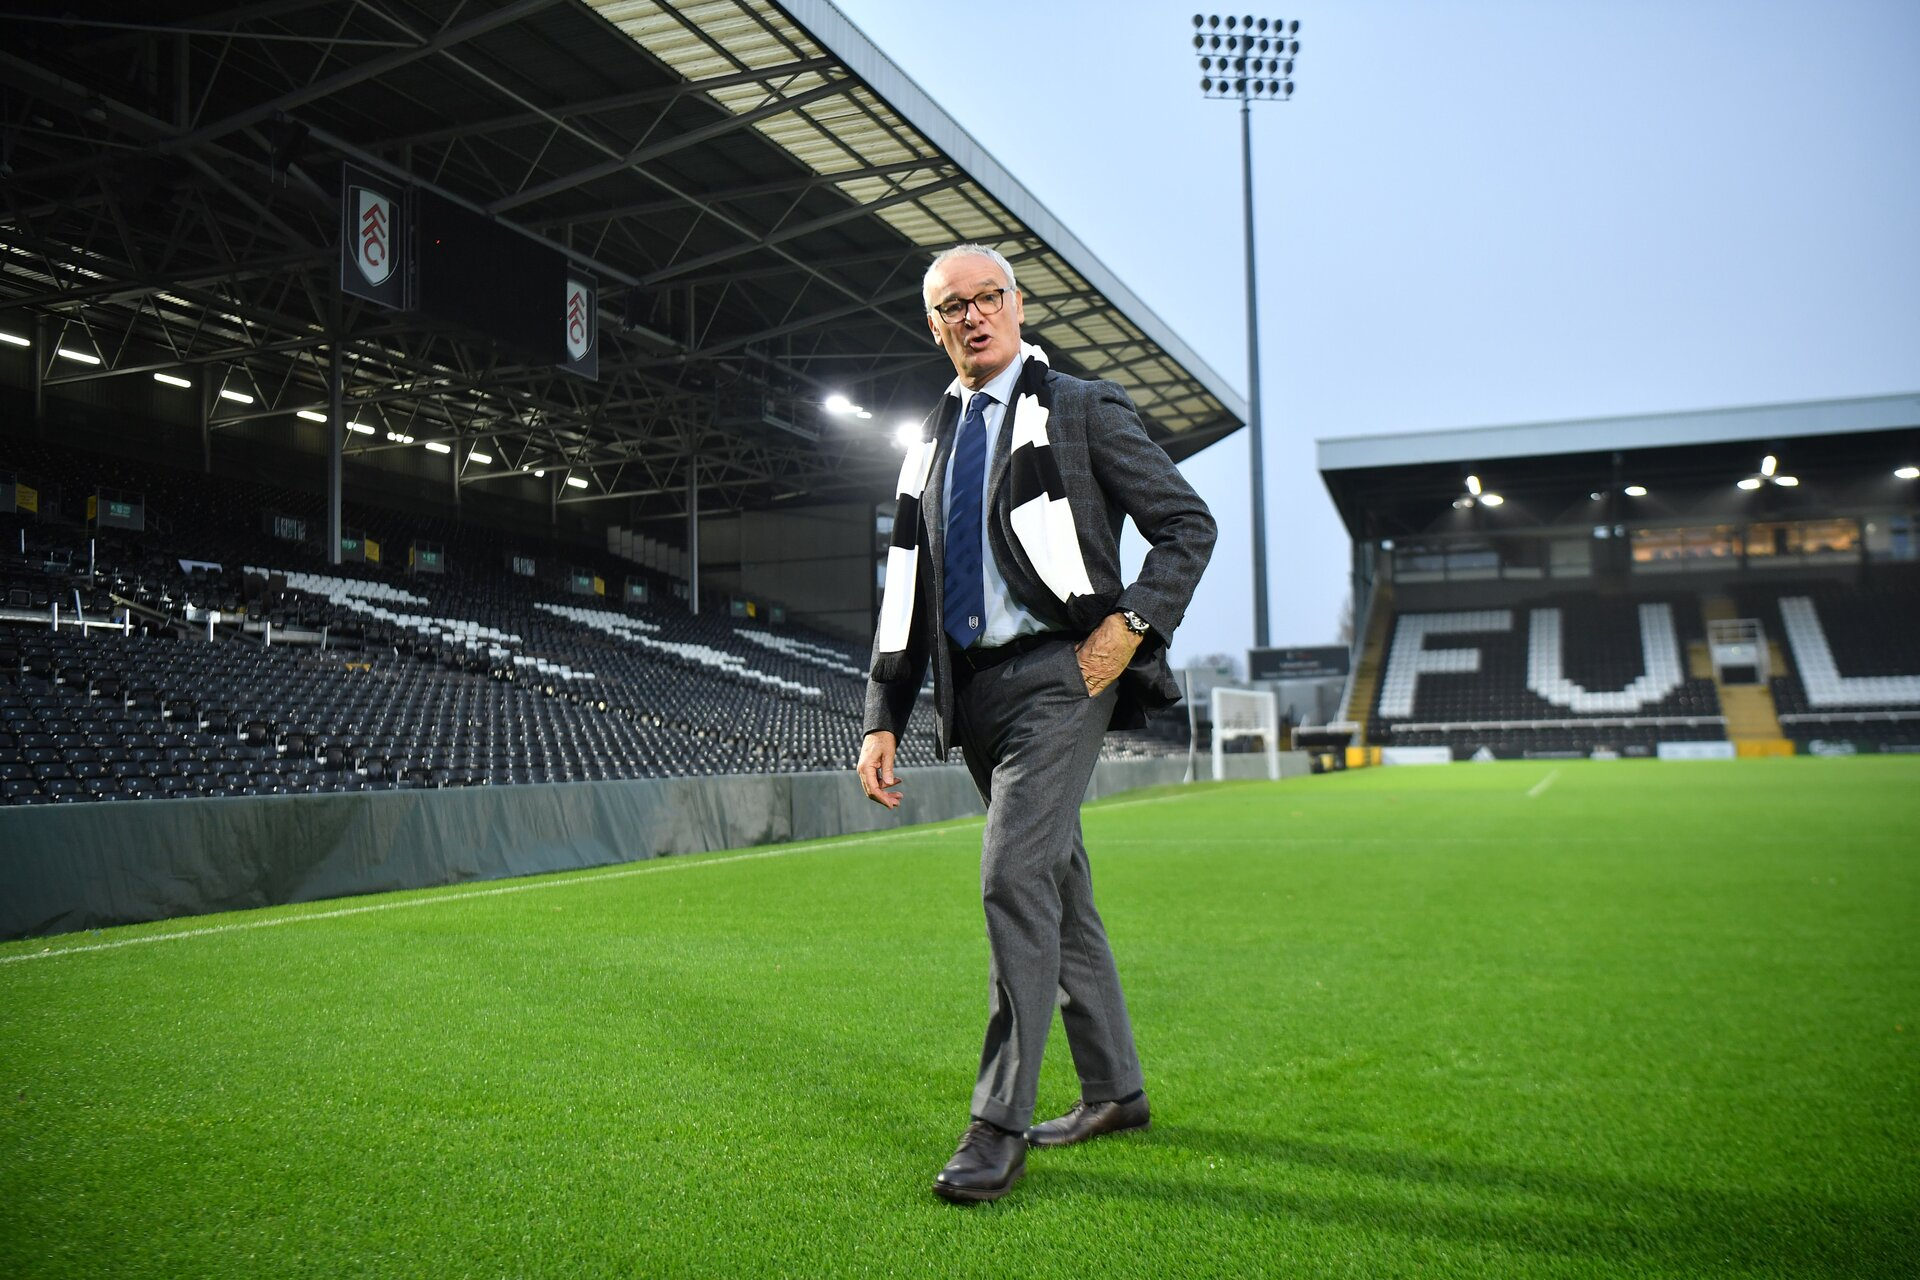 Fulham's new Italian manager Claudio Ranieri poses with a team scarf on the pitch at the club's Craven Cottage stadium on November 16, 2018. (Photo by BEN STANSALL / AFP) / RESTRICTED TO EDITORIAL USE. No use with unauthorized audio, video, data, fixture lists, club/league logos or 'live' services. Online in-match use limited to 75 images, no video emulation. No use in betting, games or single club/league/player publications. /         (Photo credit should read BEN STANSALL/AFP/Getty Images)